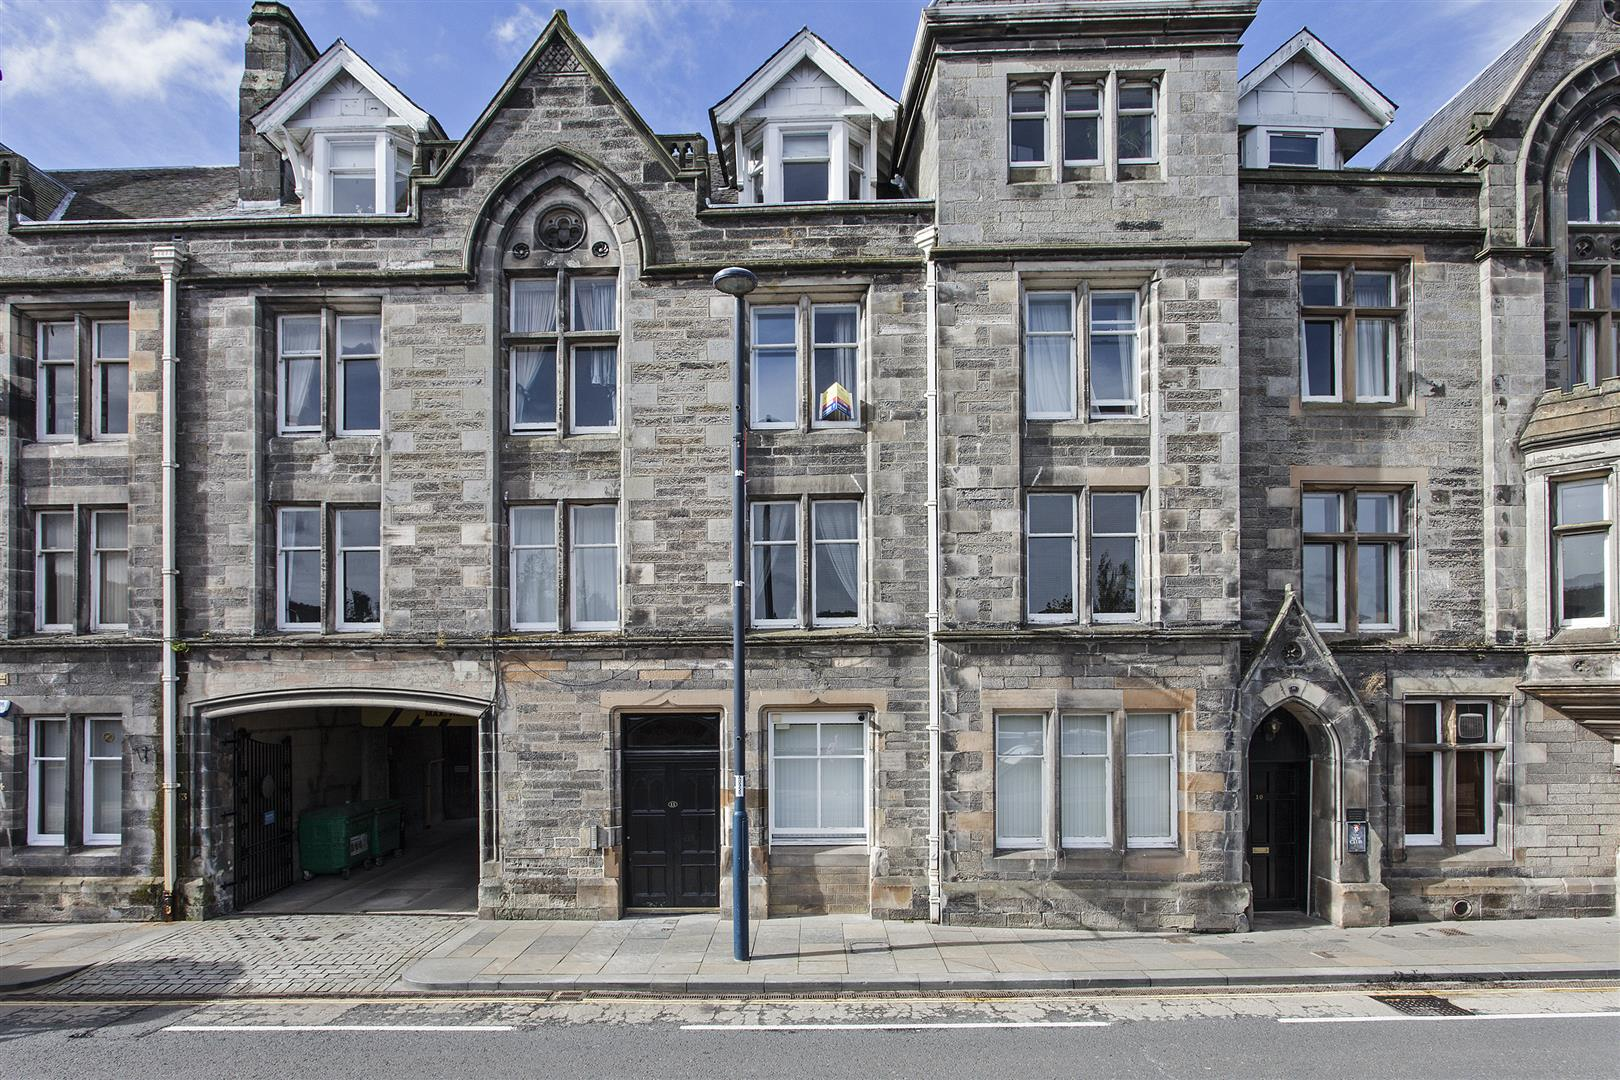 11 Tay Street, Perth, Perthshire, PH1 5LQ, UK